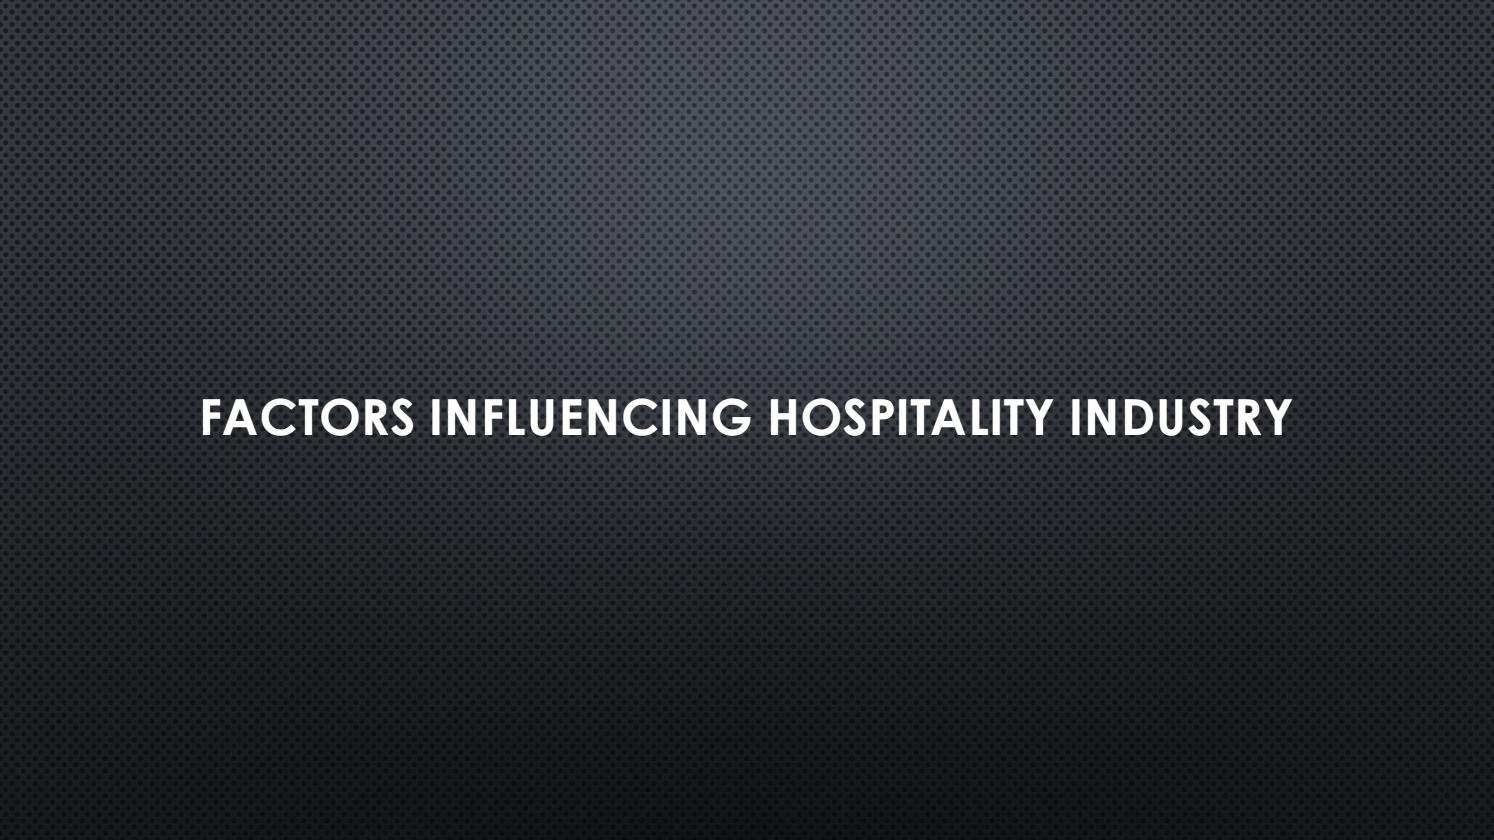 factors that influence hospitality industry